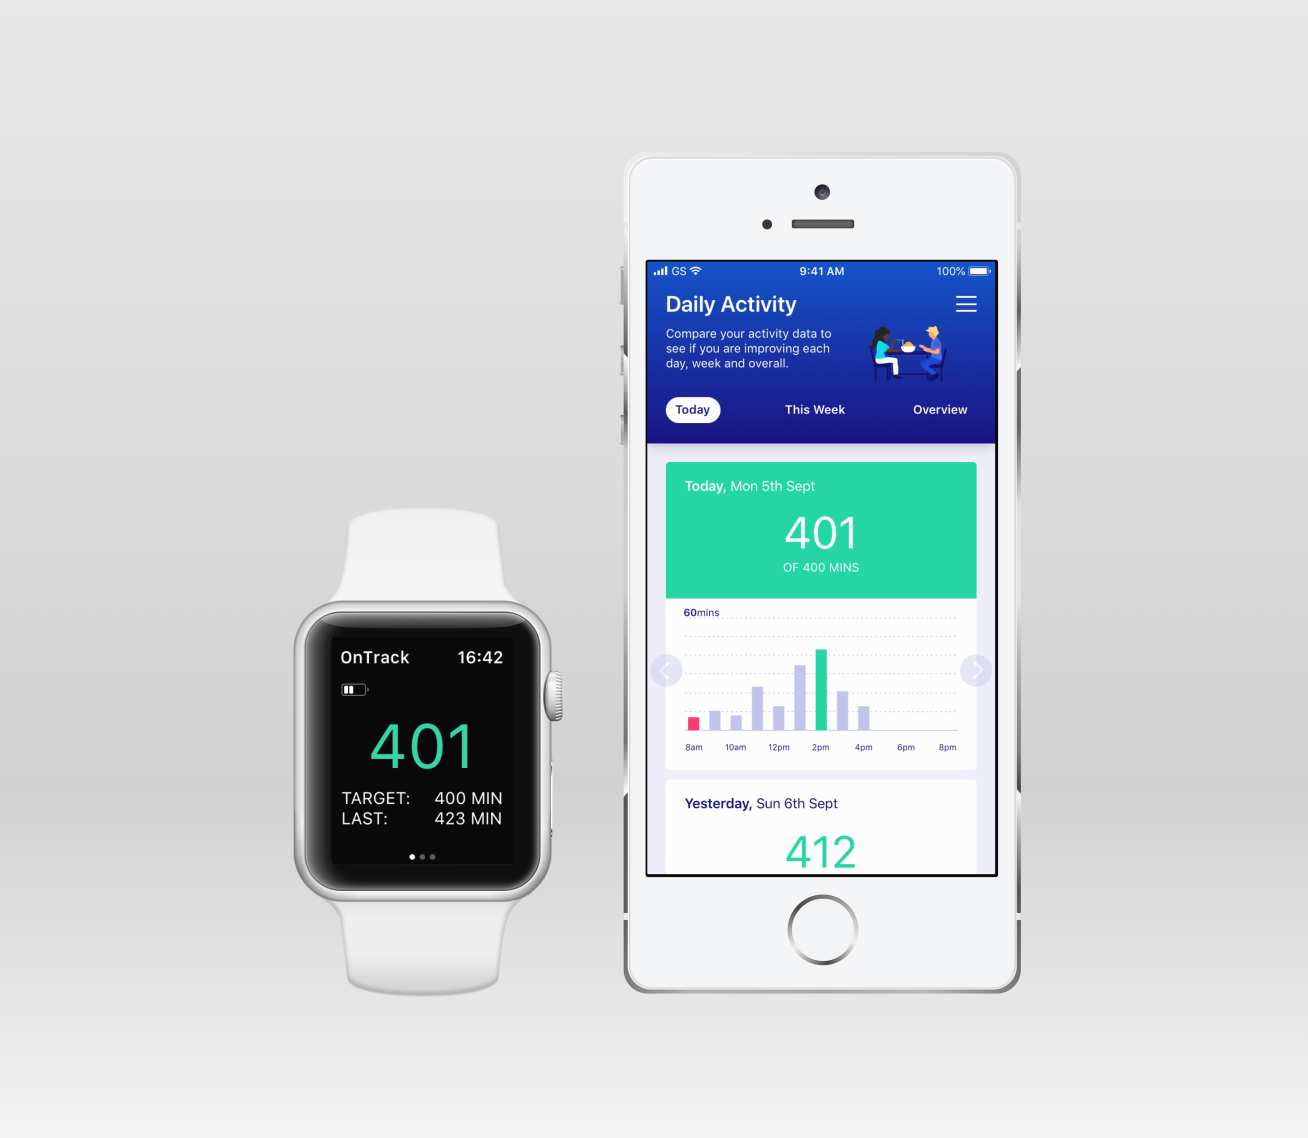 A graphic showing an apple watch and iphone displaying activity data